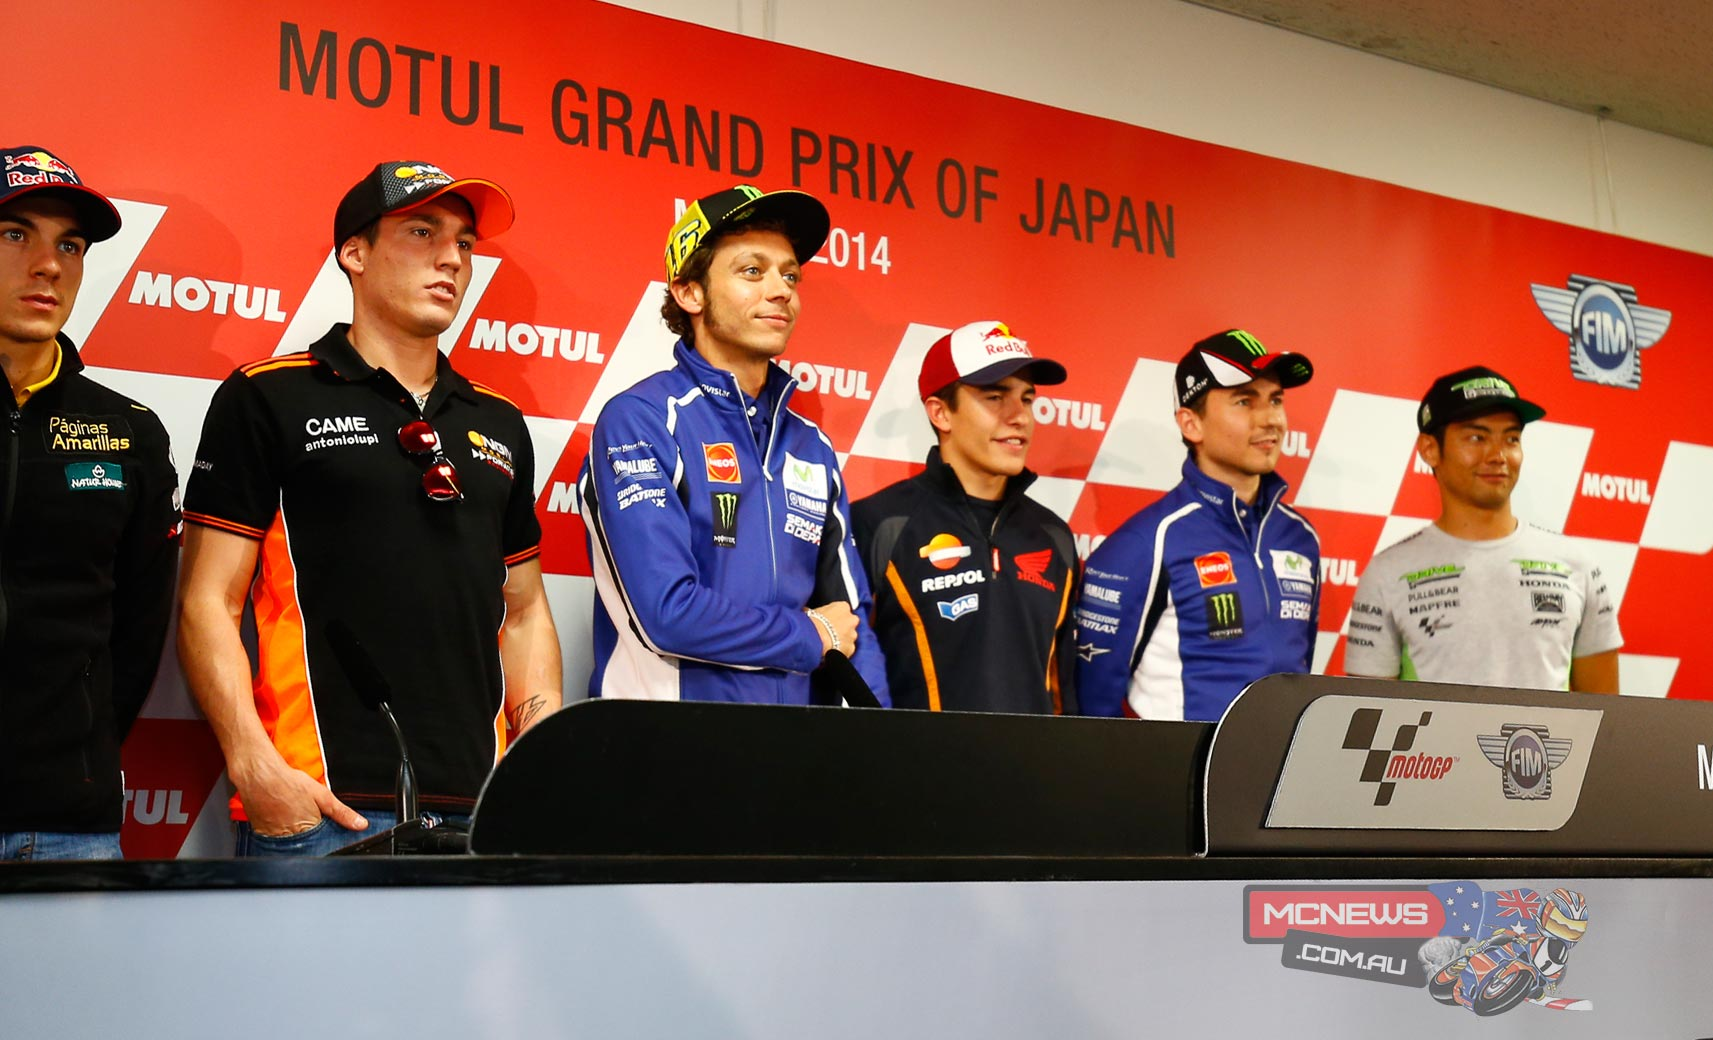 In the pre-event press conference ahead of the Motul Grand Prix of Japan on Thursday Marc Marquez, Valentino Rossi, Jorge Lorenzo, Aleix Espargaro, Hiroshi Aoyama and Maverick Viñales addressed the media as they prepare to embark on the first of the flyaway triple-header of races this weekend.